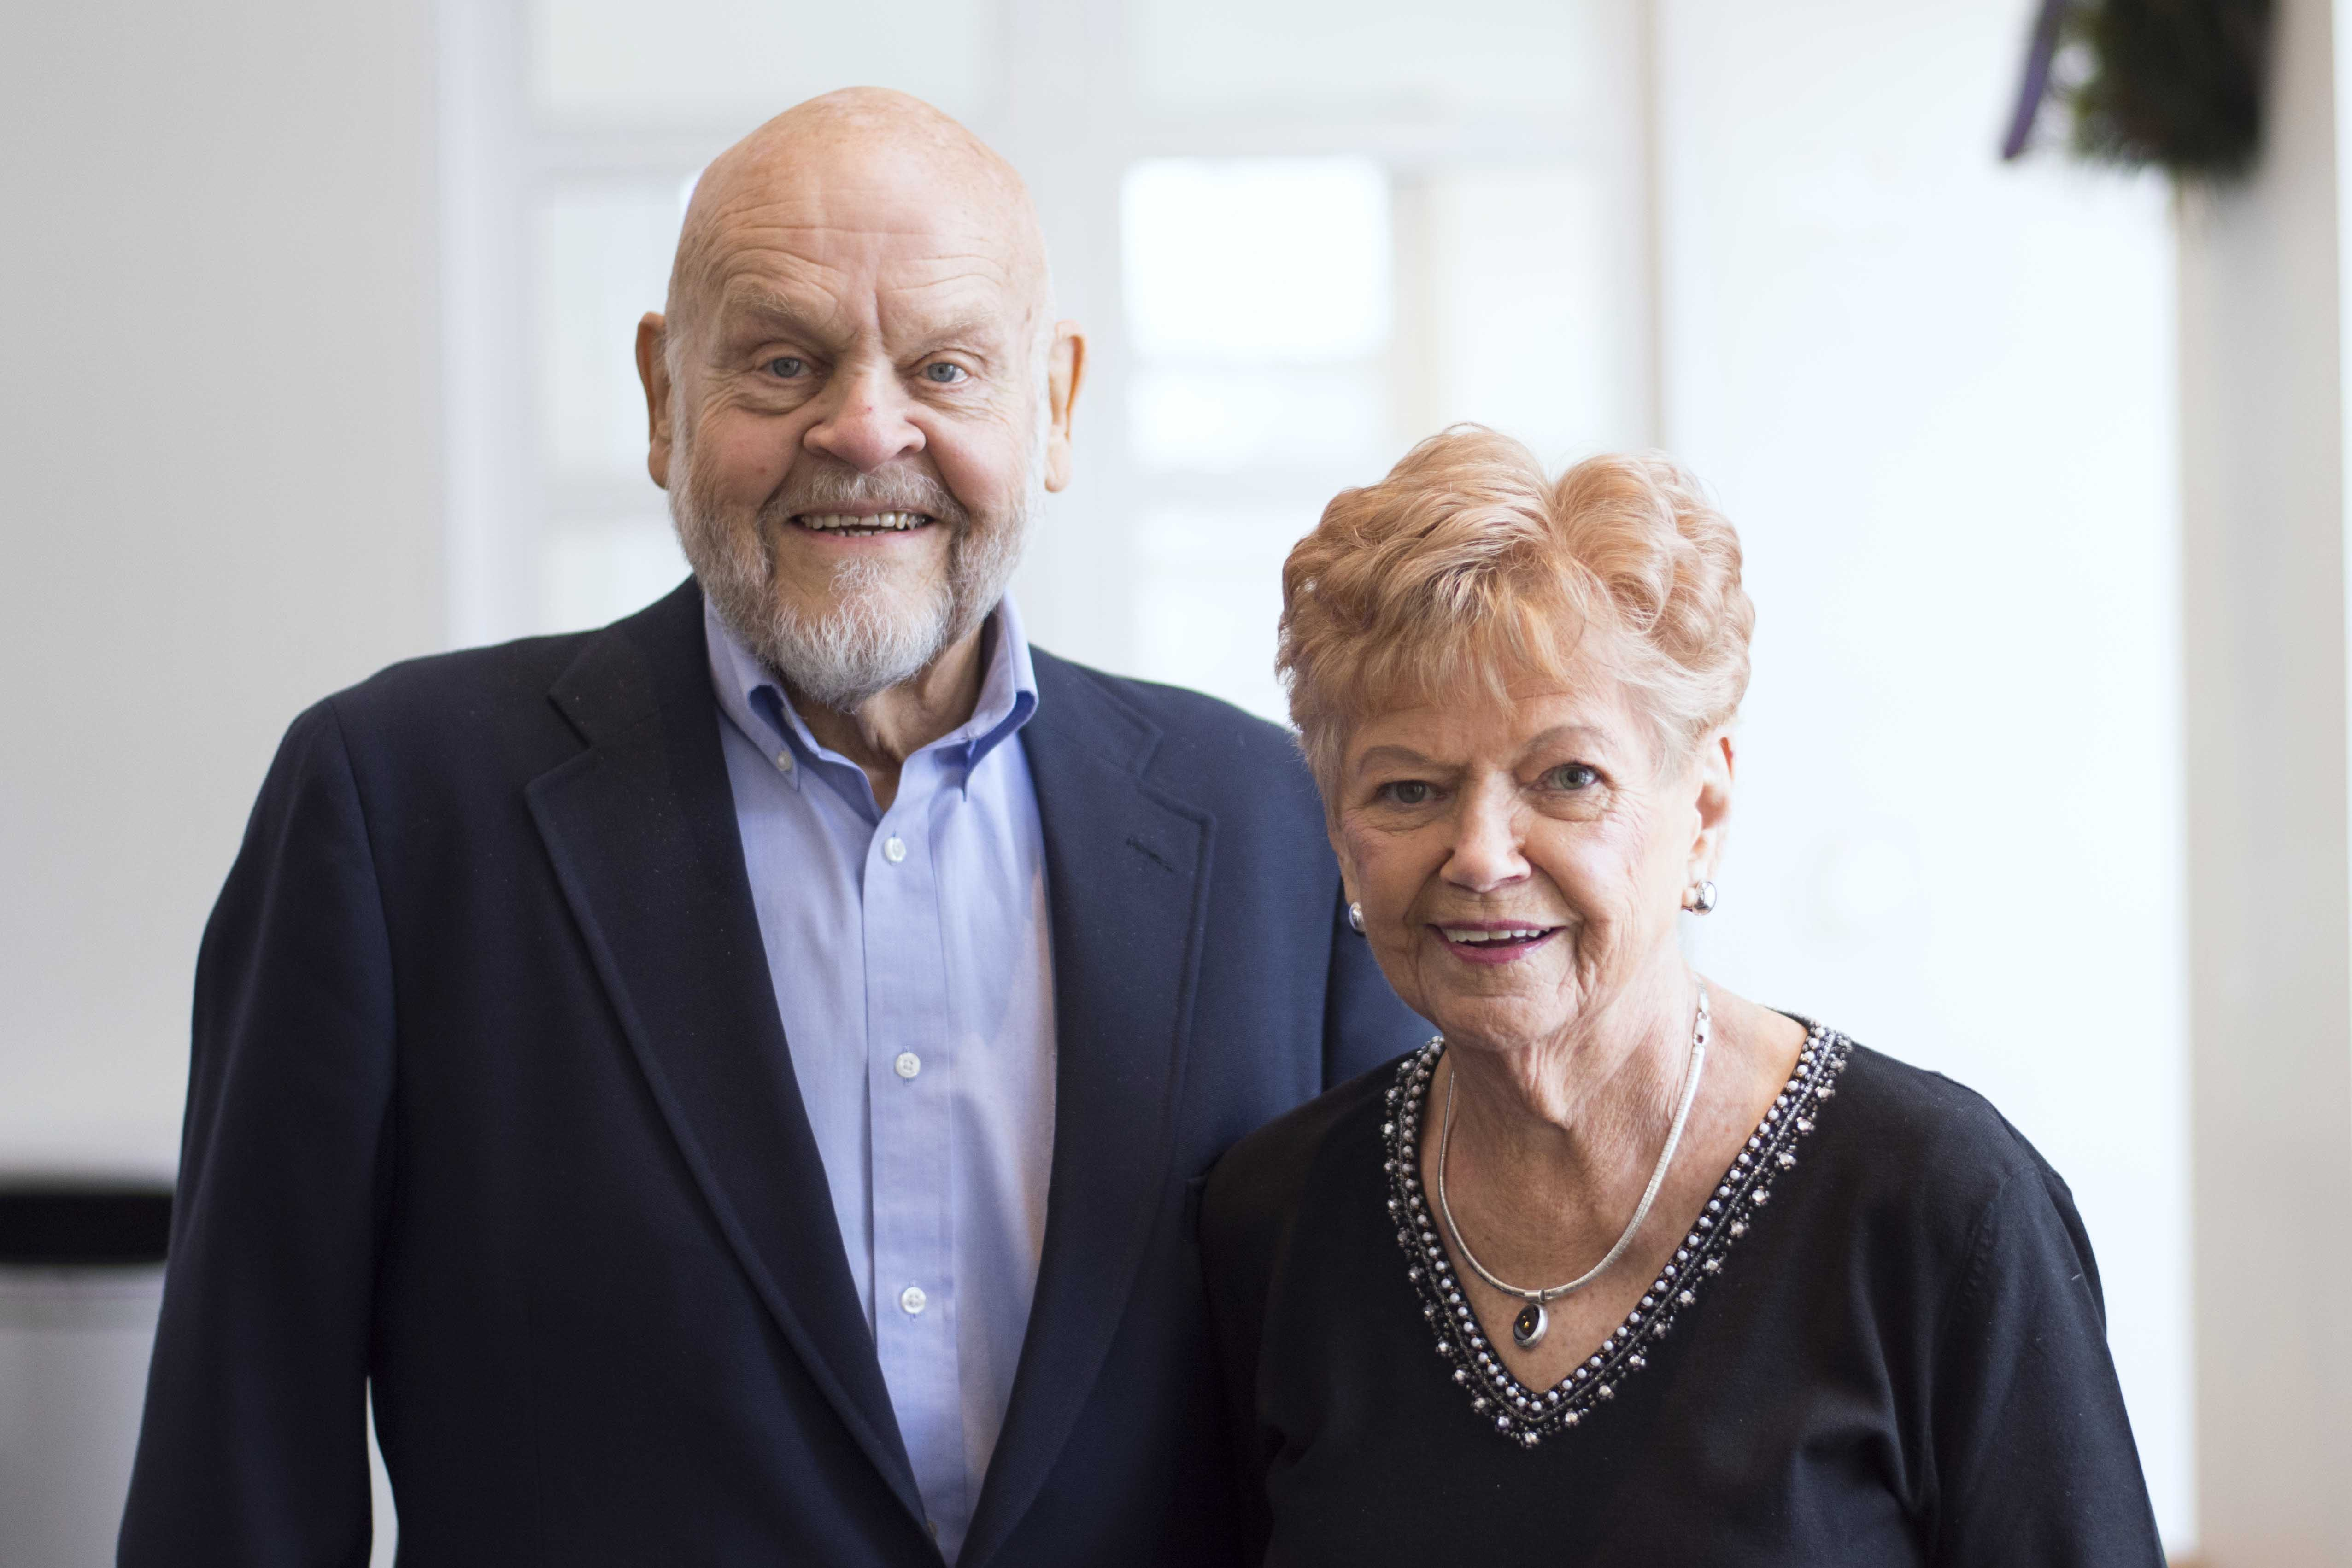 Donor Couple Will Impact Students 'as Long as God Gives Them Health and Strength'